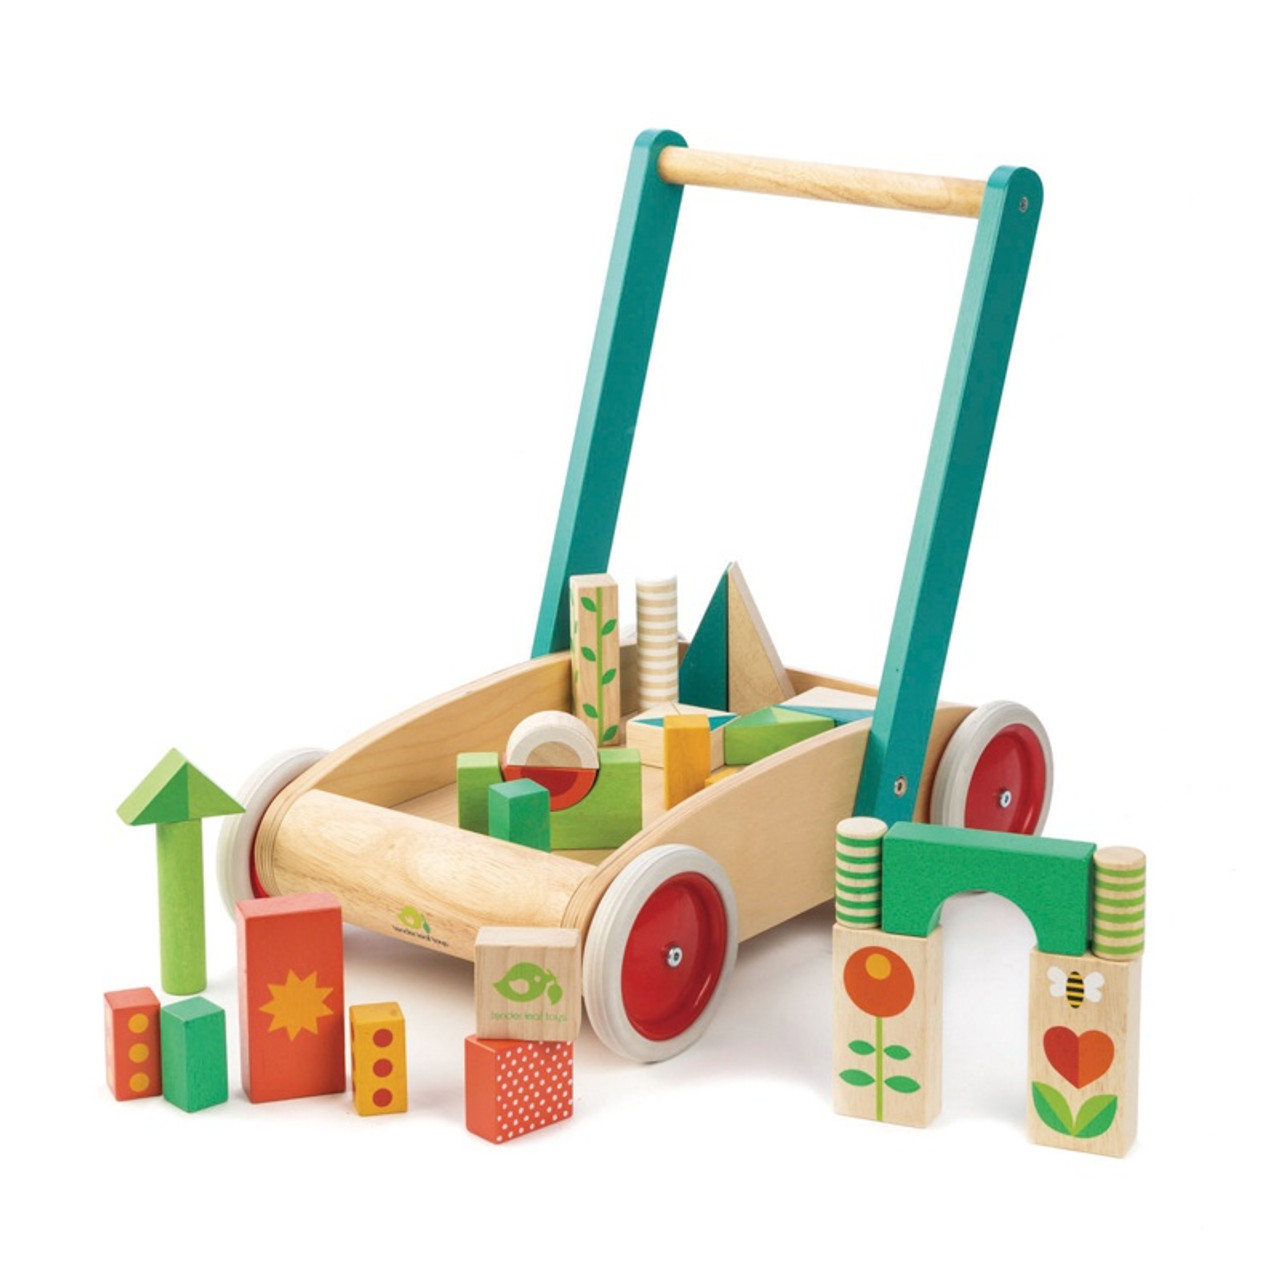 Tender Leaf Toys Wooden Wagon with Blocks at Baby Barn Discounts Watch your little one take their first steps with Tender Leaf's classic baby walker.